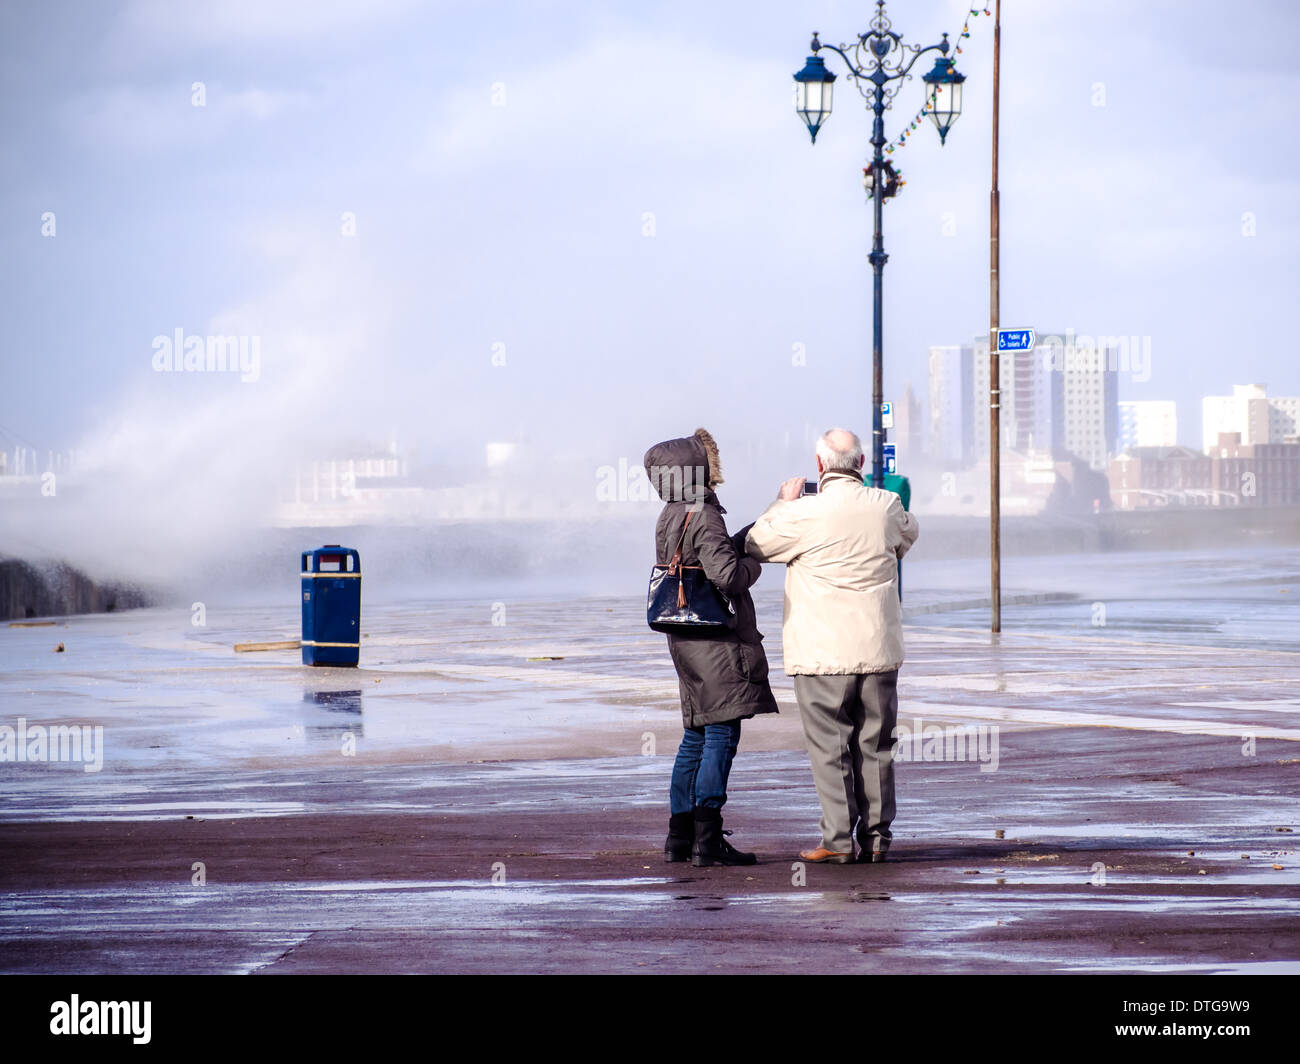 A senior man and lady taking photographs of waves on Southsea seafront, Portsmouth, Engalnd Stock Photo